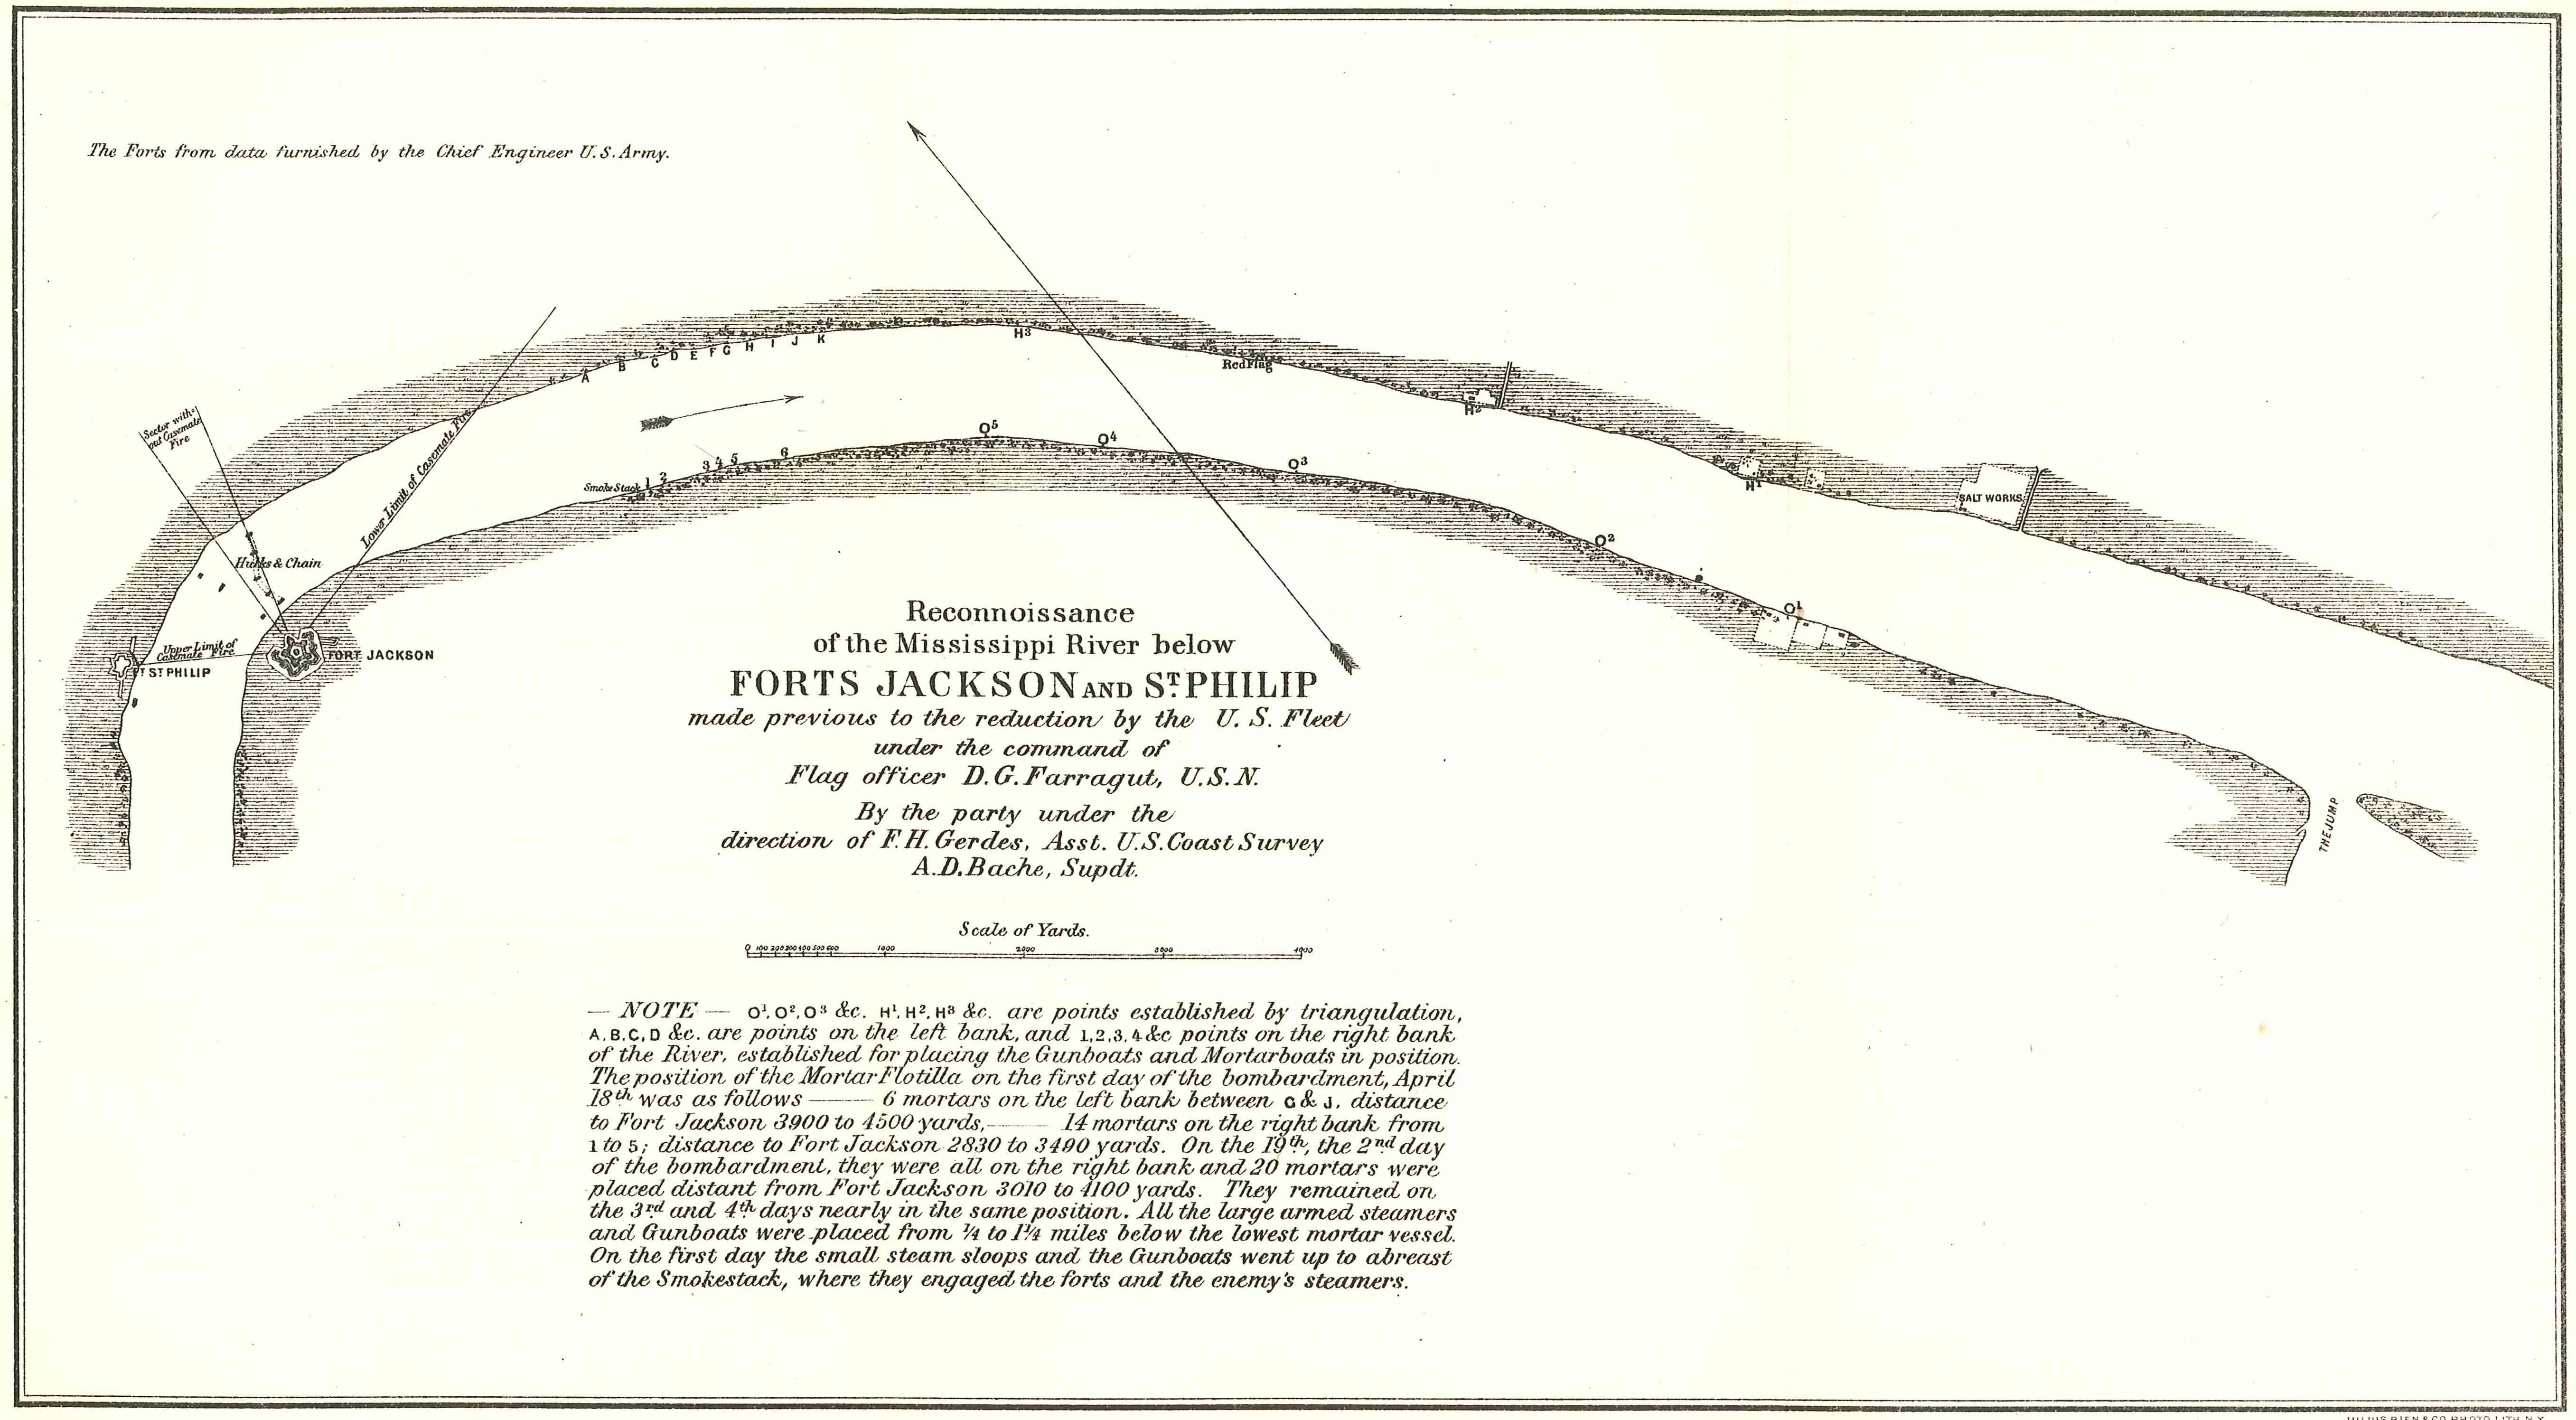 Survey of the Mississippi River below Forts Jackson and St. Philip to prepare for the bombardment of the forts by Porters mortar fleet. Plan done by the U.S. Coast Survey.ORN I, v. 18, p.362.